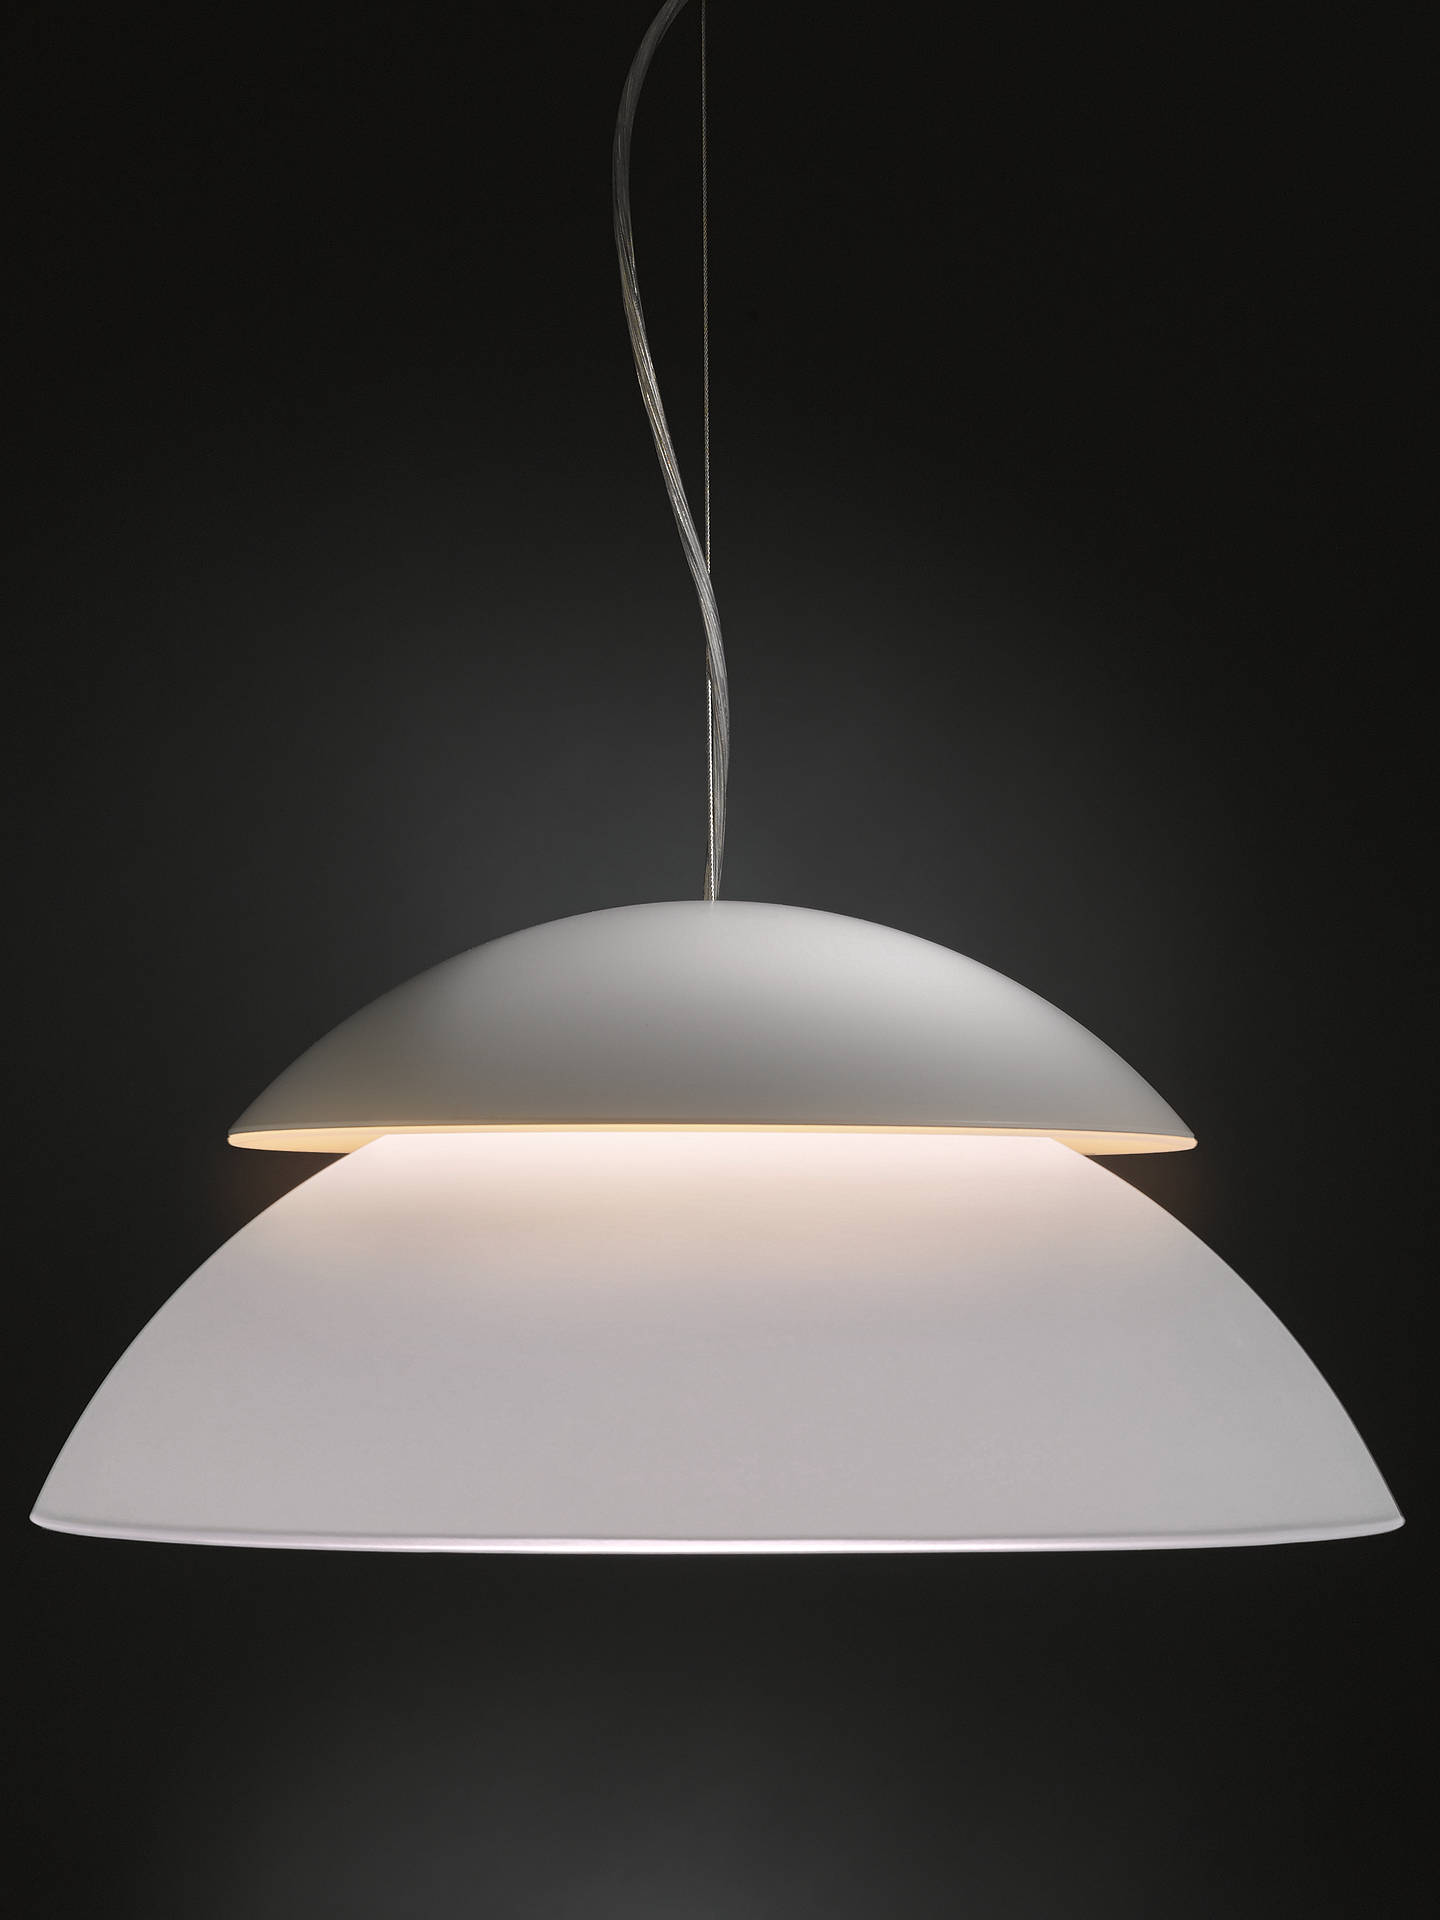 Buy Philips Hue Beyond Pendant Light Online at johnlewis.com